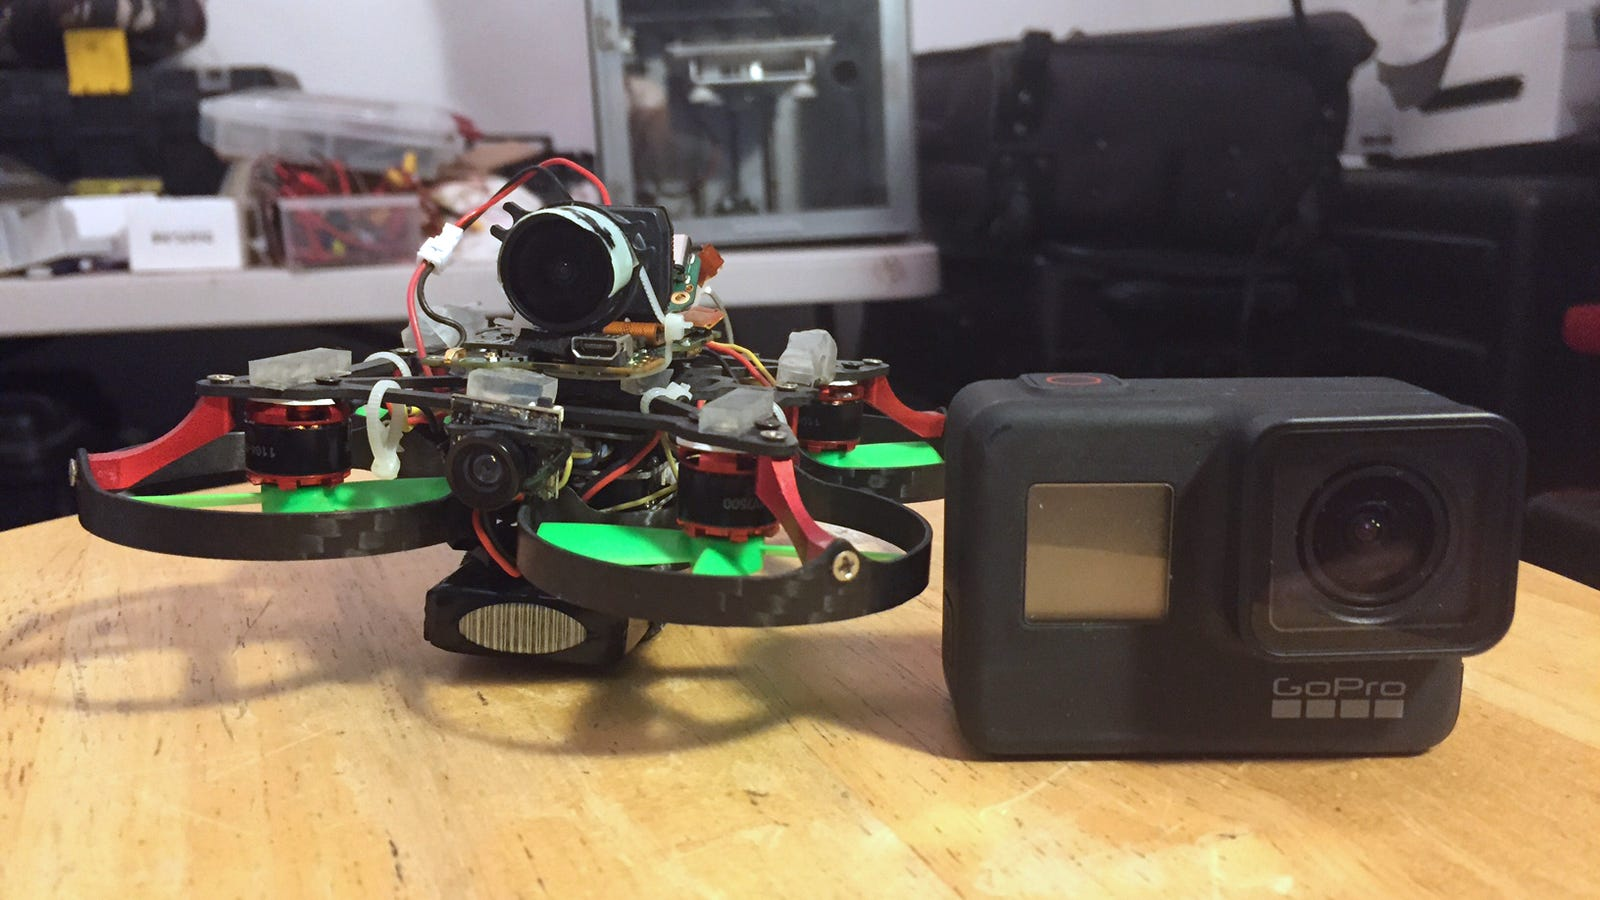 To save weight, the drone's onboard GoPro camera was stripped to its bare essentials.